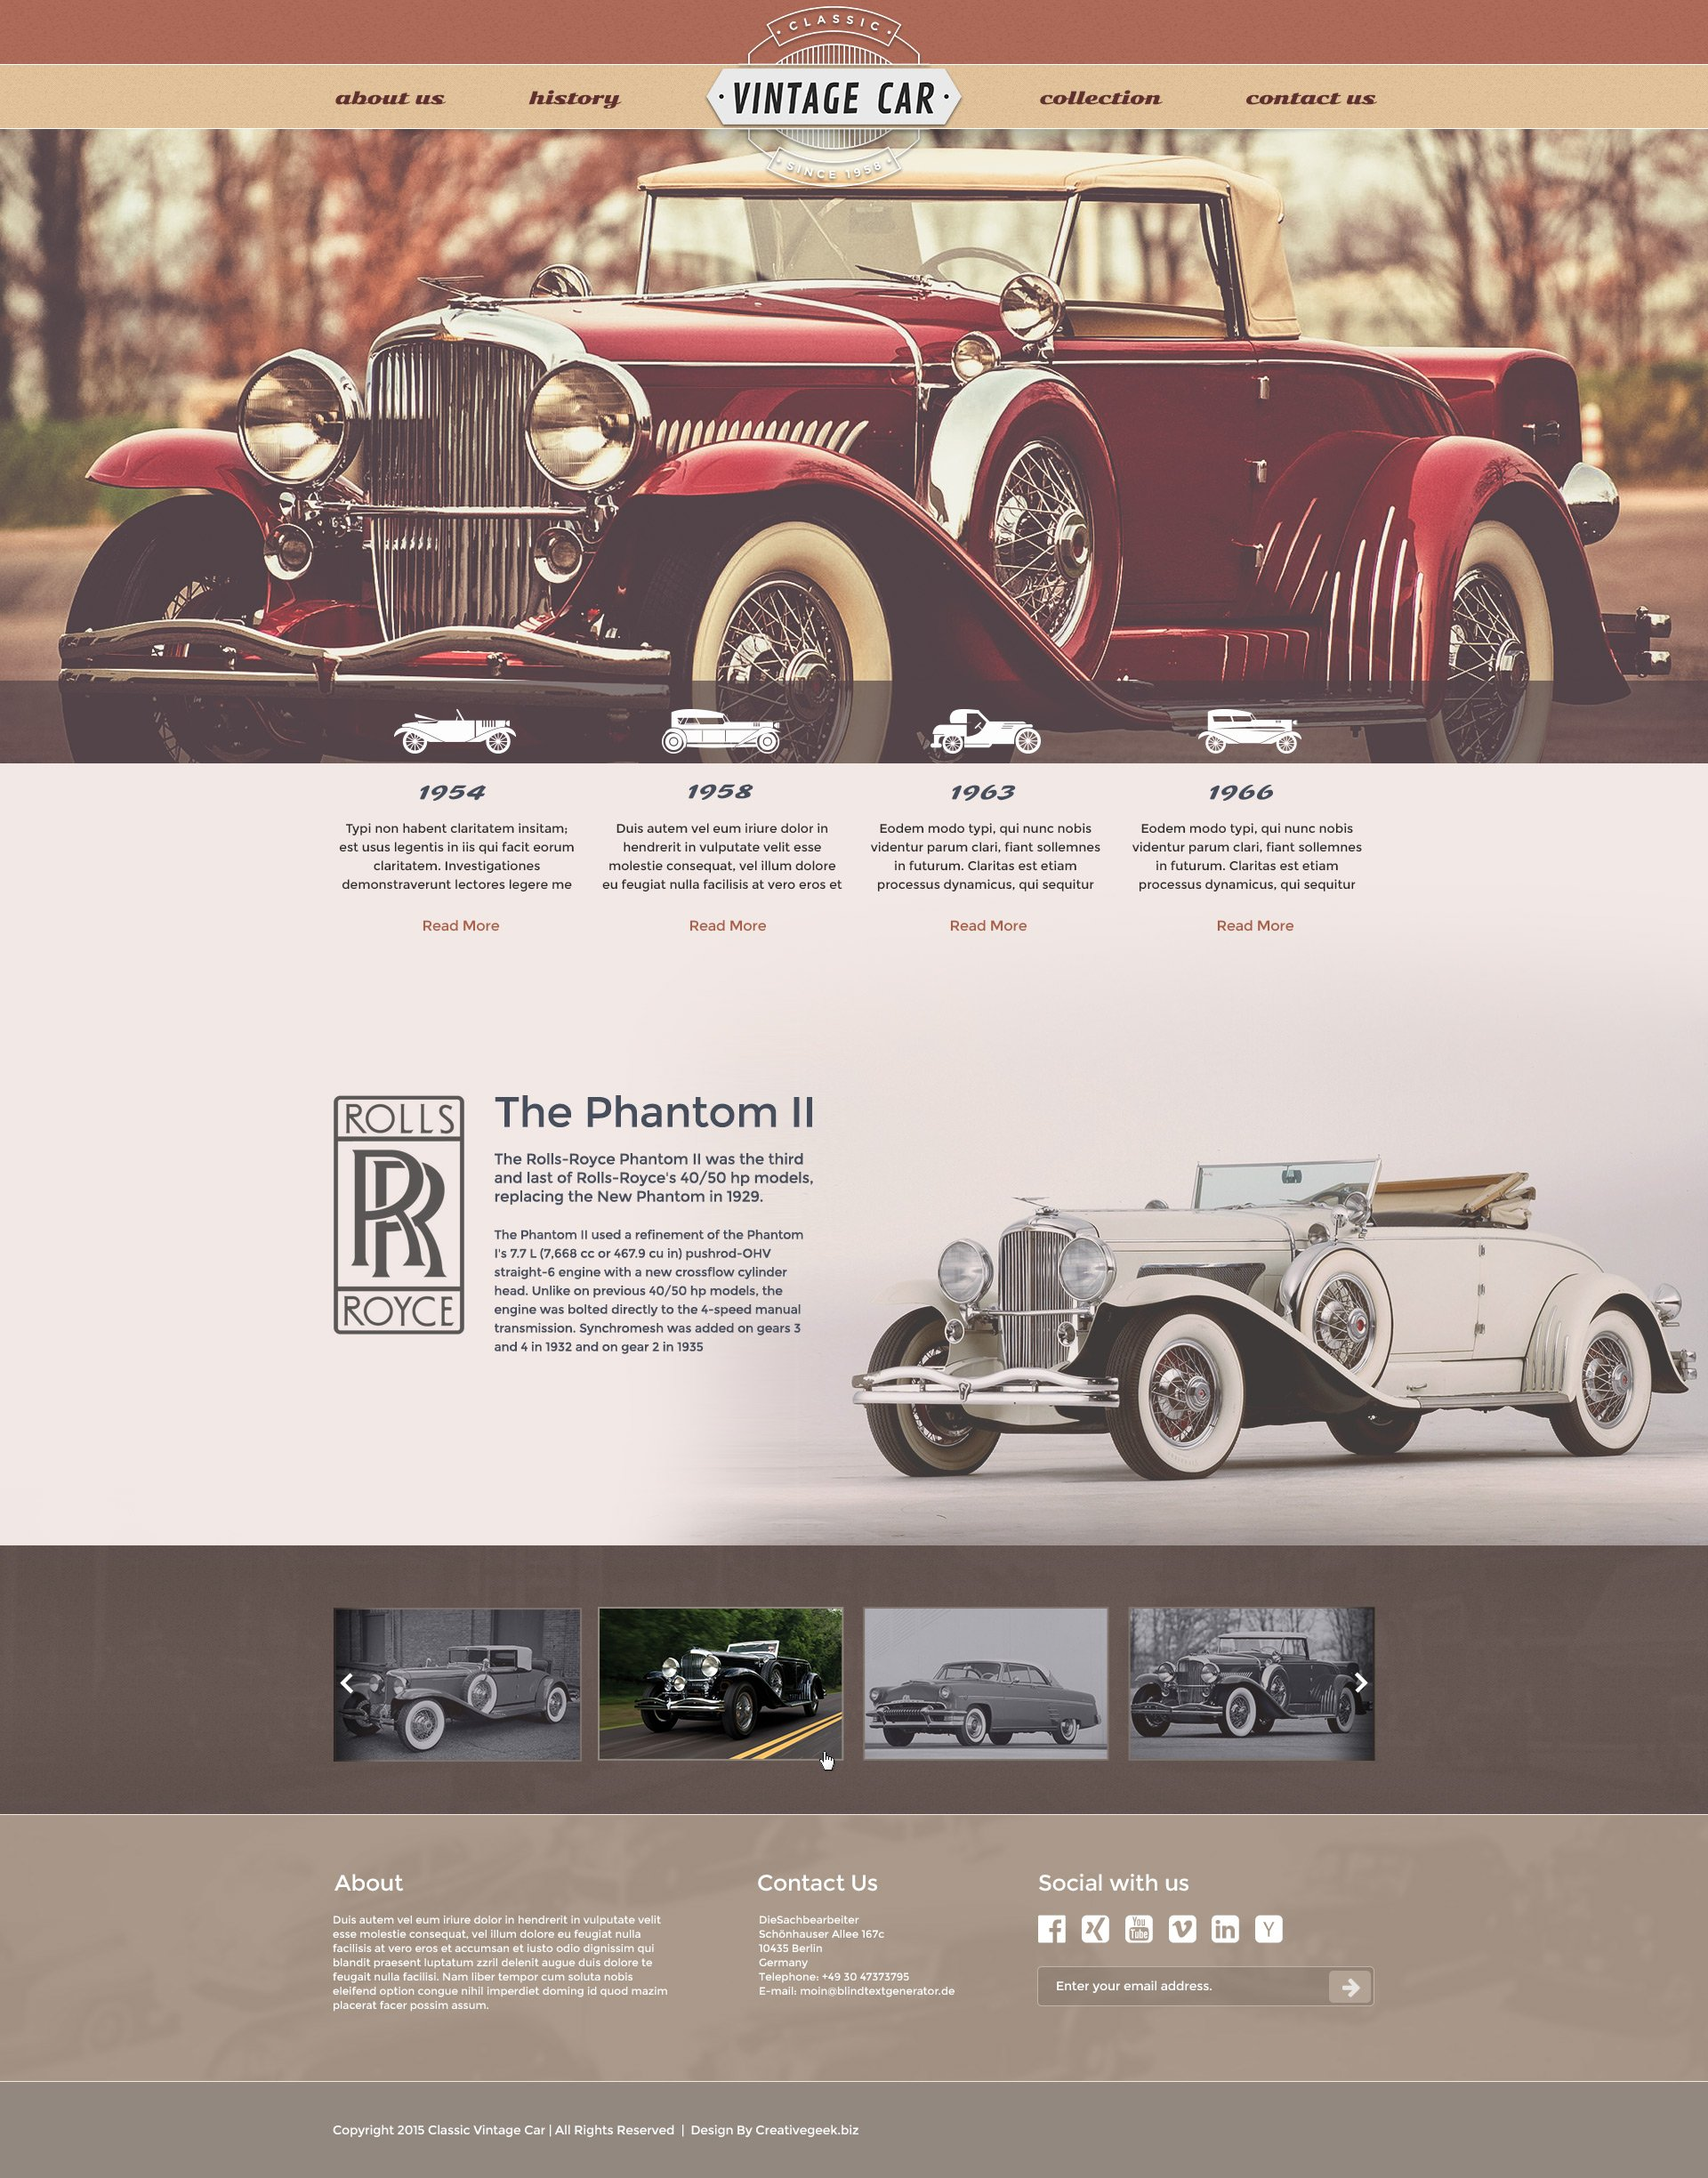 Free Vintage Car Template Creativegeek - Classic car websites